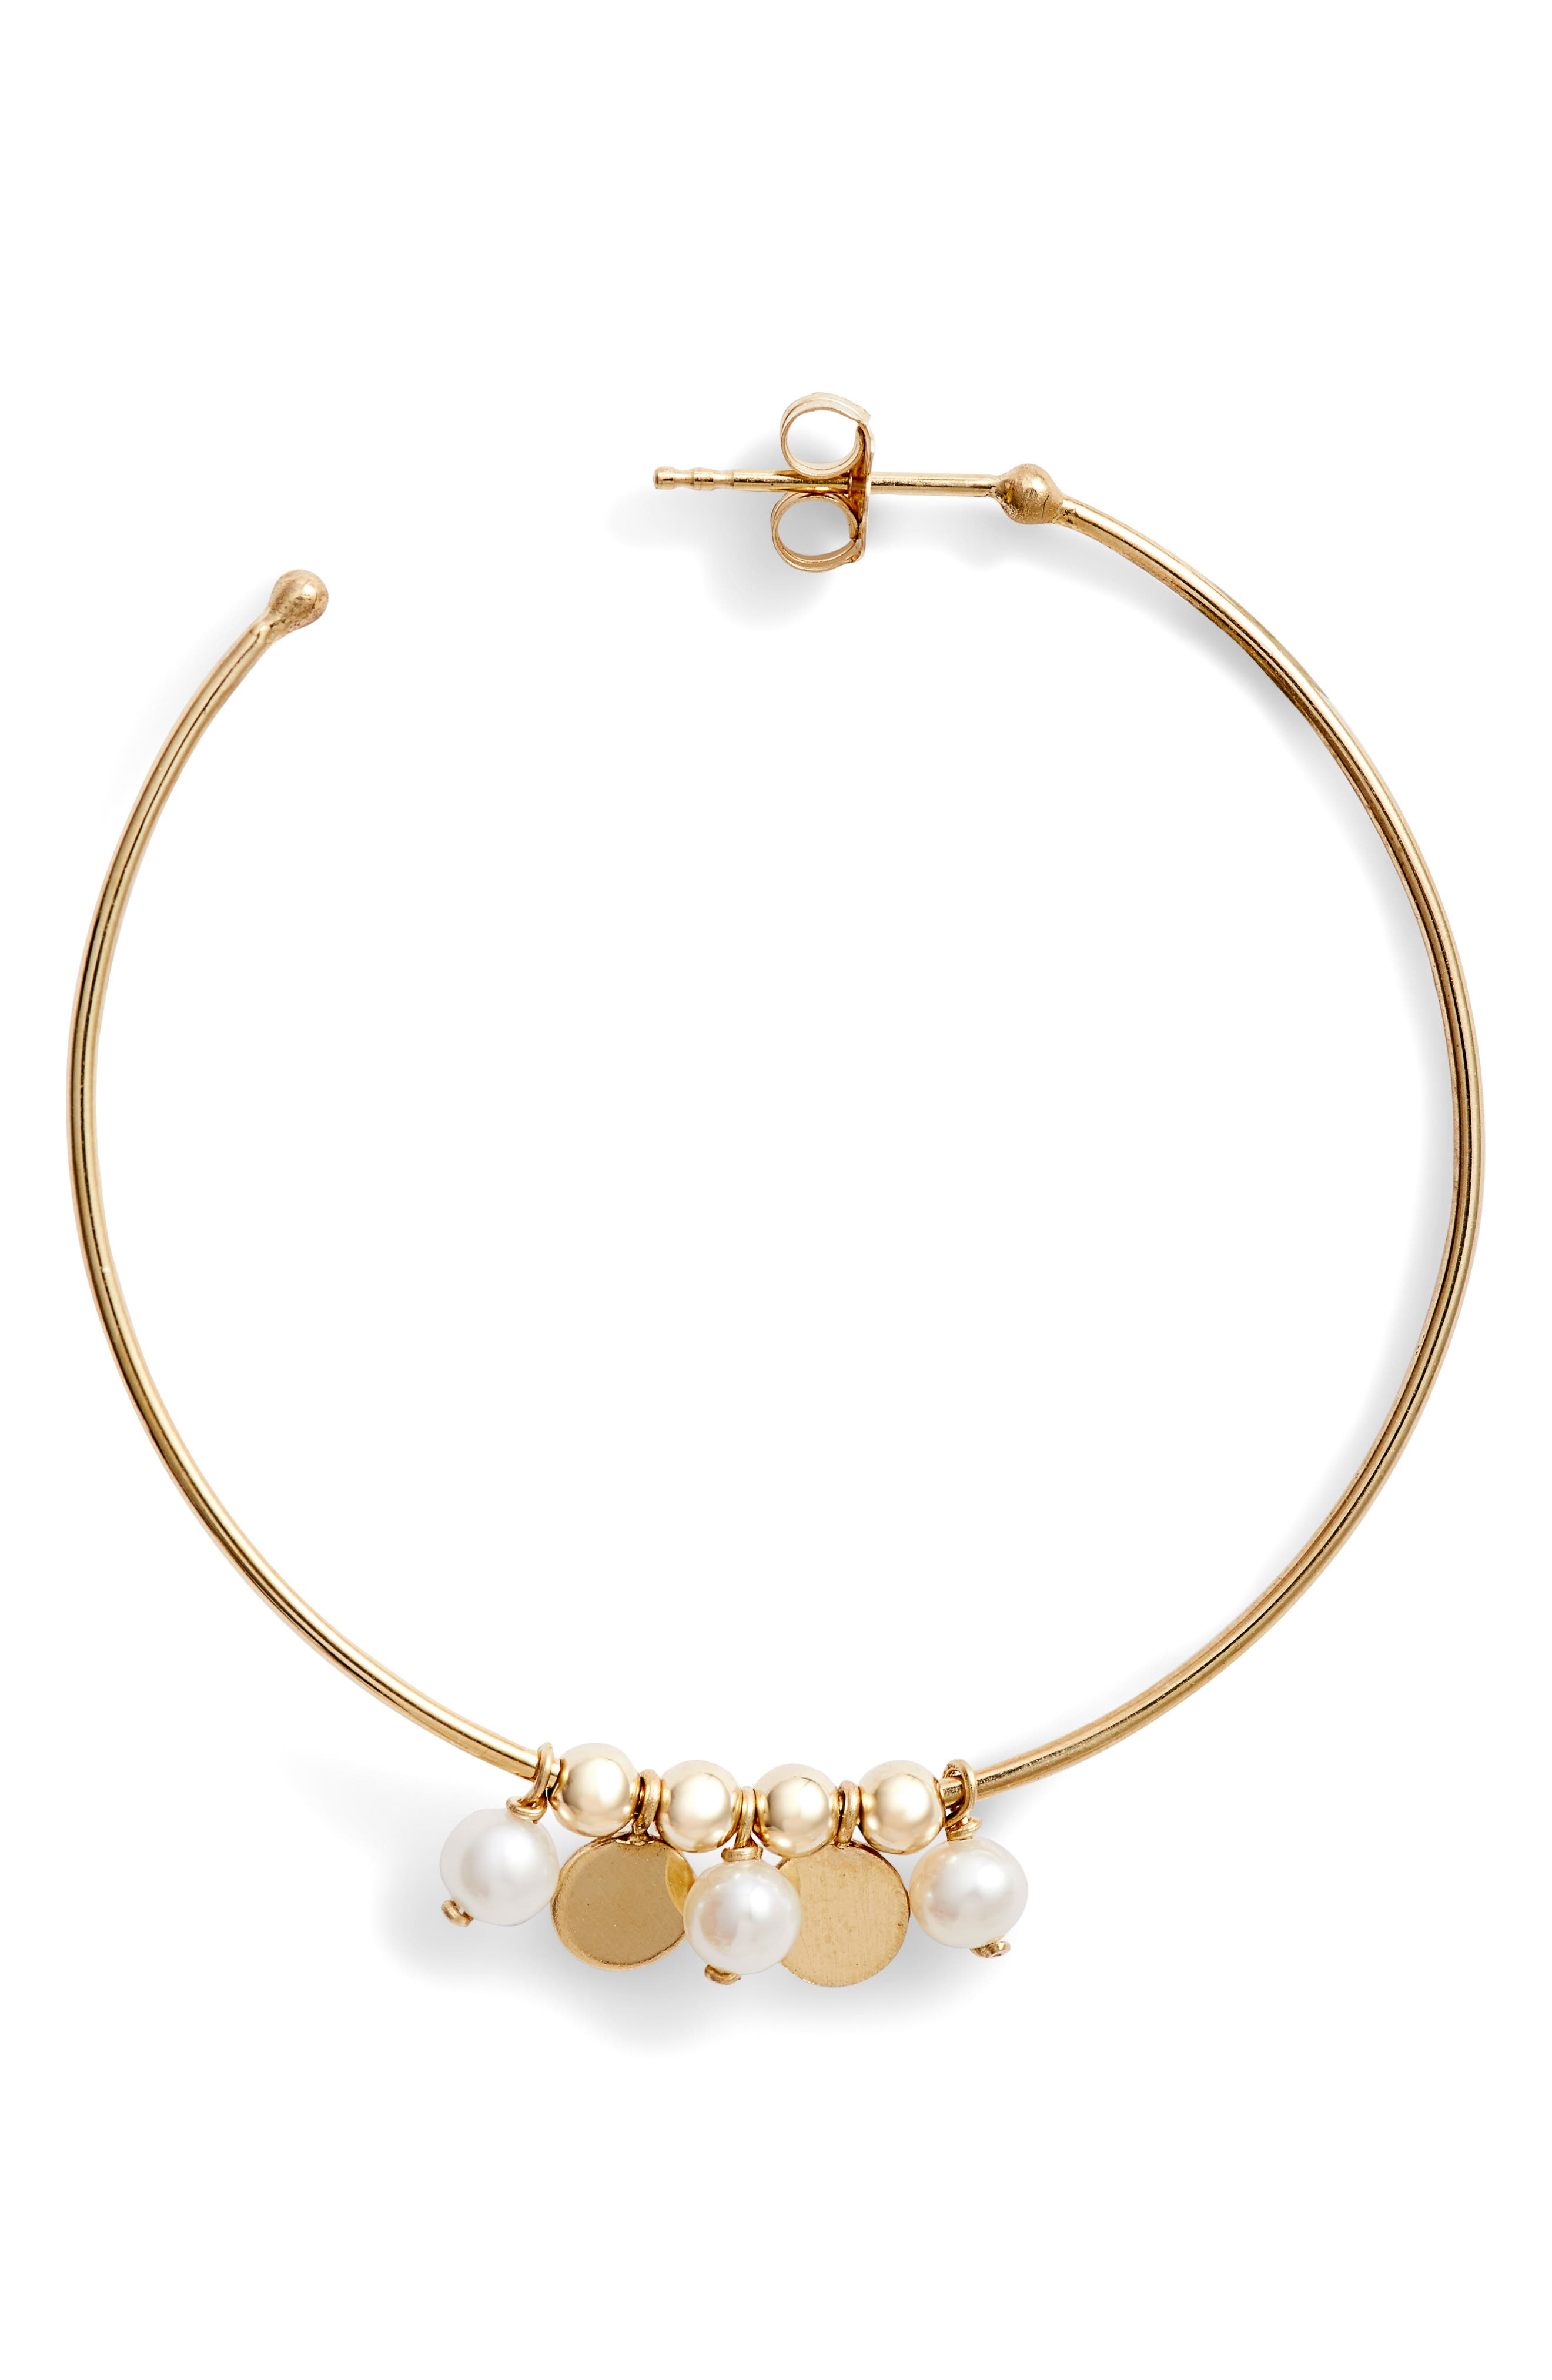 Confetti Pearl Gold Hoop Earrings,                             Alternate thumbnail 4, color,                             YELLOW GOLD/ WHITE PEARL